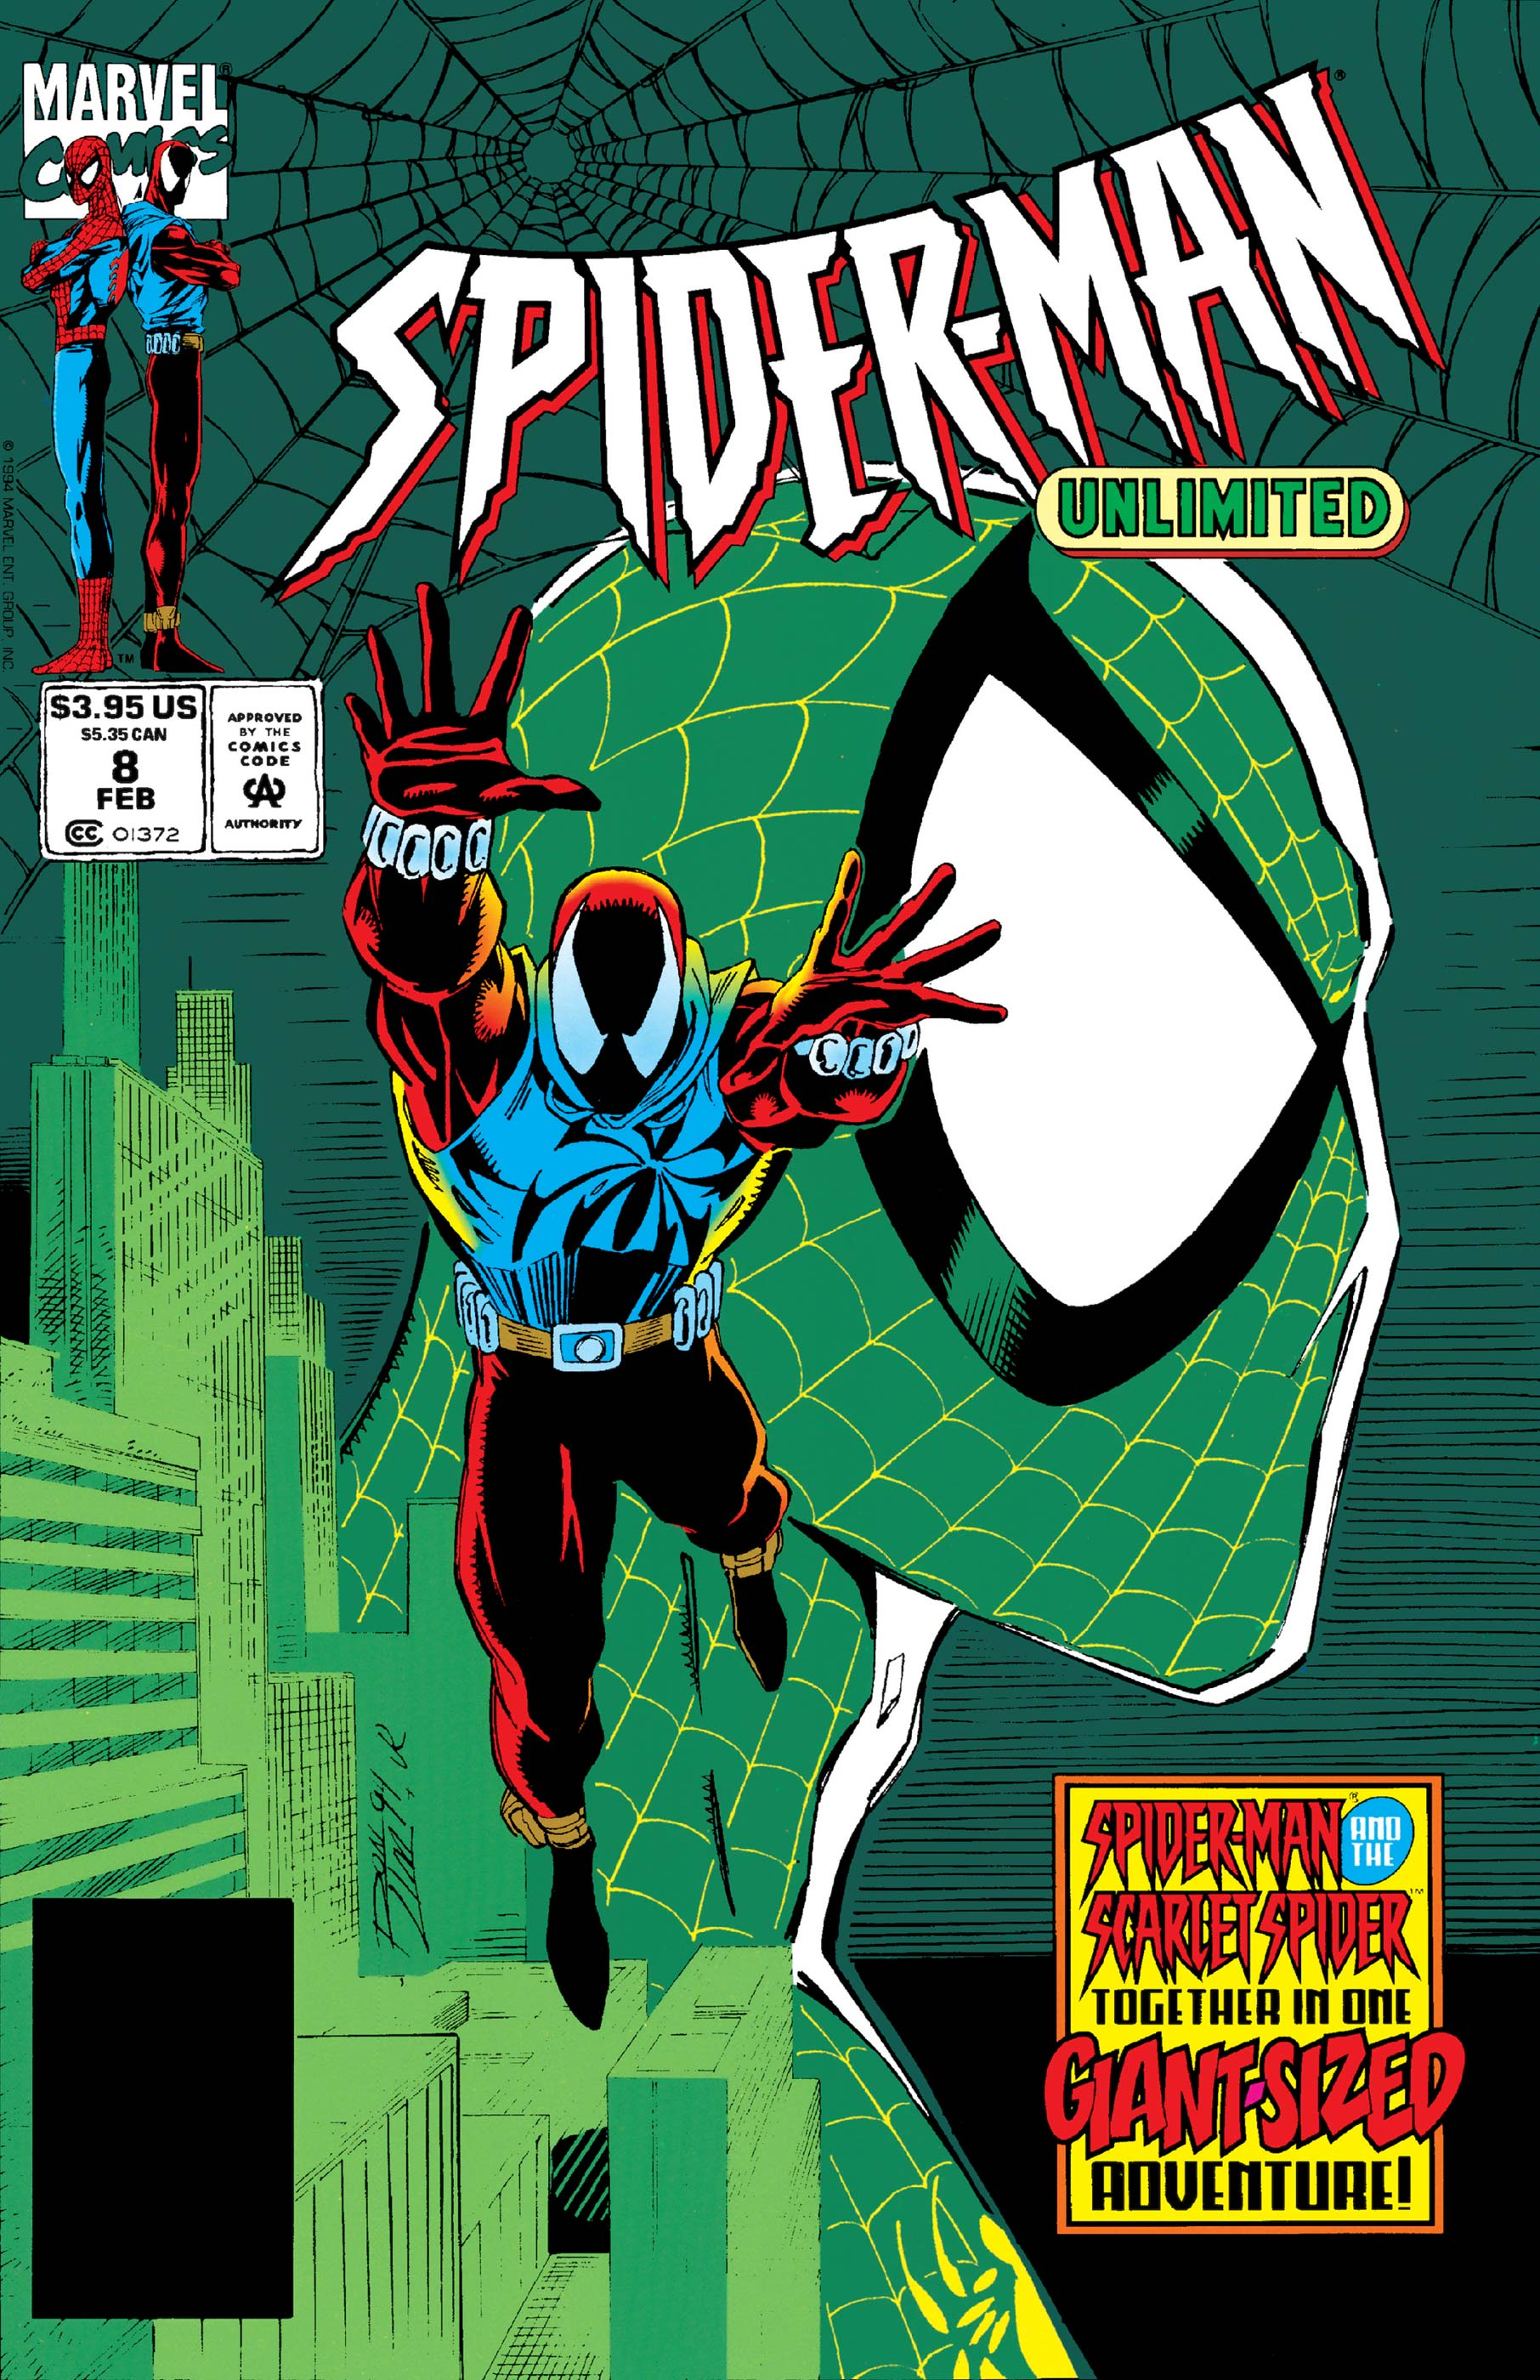 Spider-Man Unlimited (1993) #8